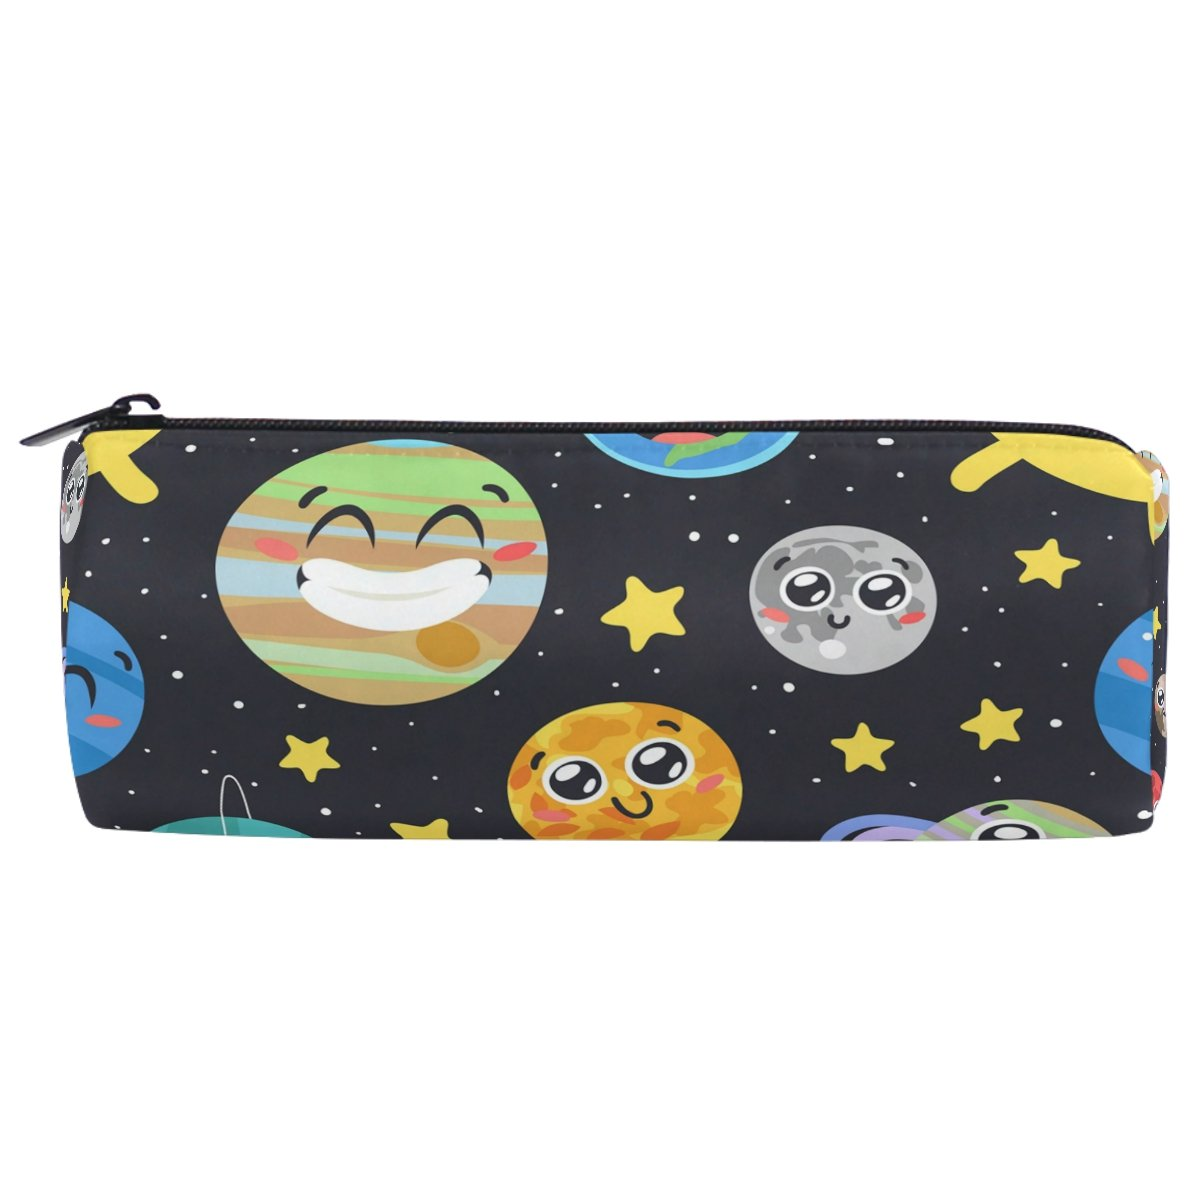 ALAZA Hand Drawn Solar System Sun Moon Pencil Pen Case Pouch Bag with Zipper for Girls Kids School Student Stationery Office Supplies